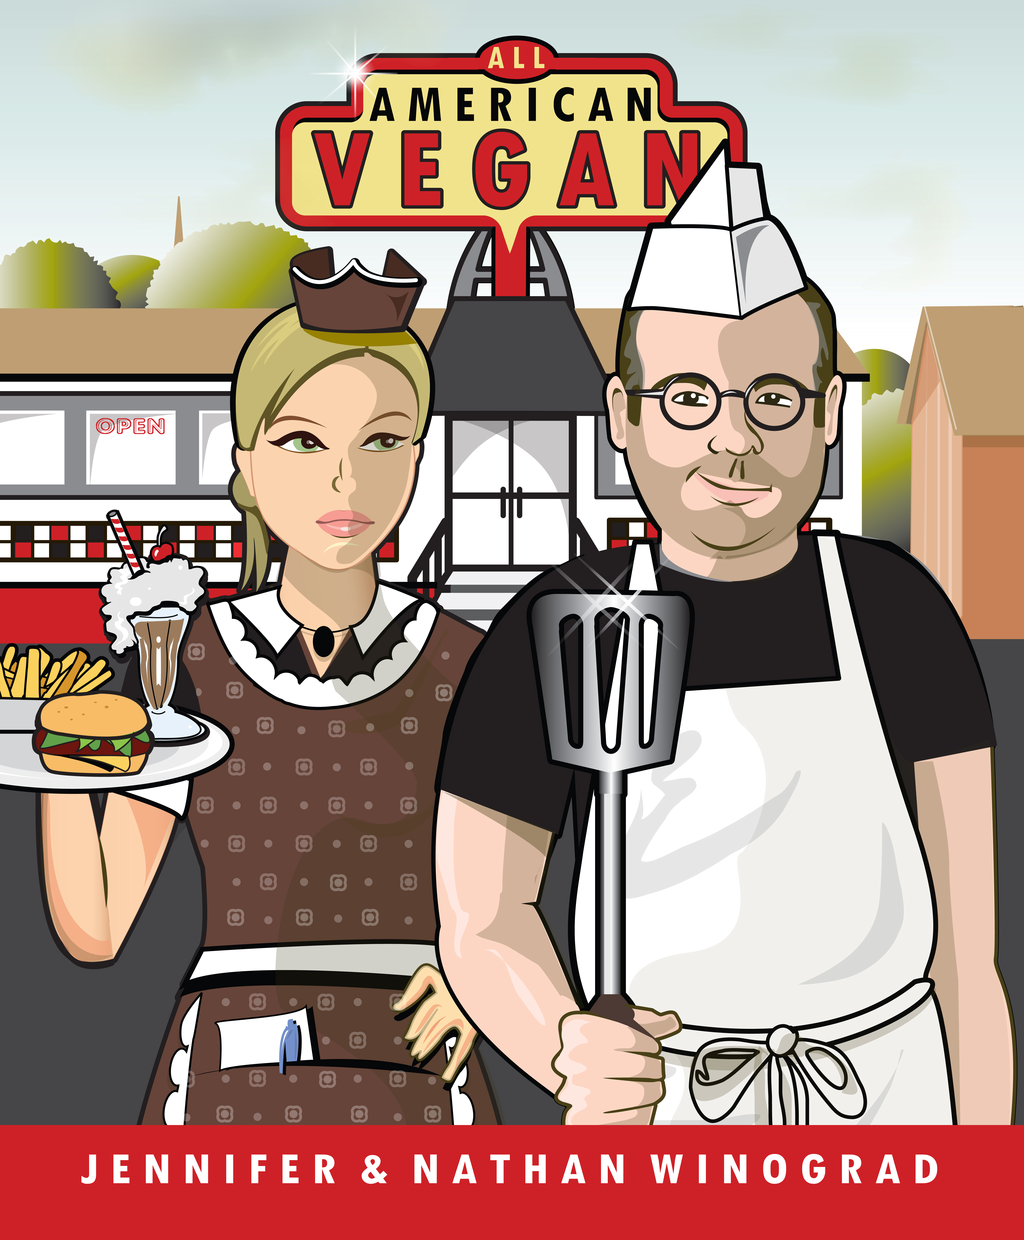 All American Vegan: Veganism for the Rest of Us By: Jennifer Winograd,Nathan J. Winograd